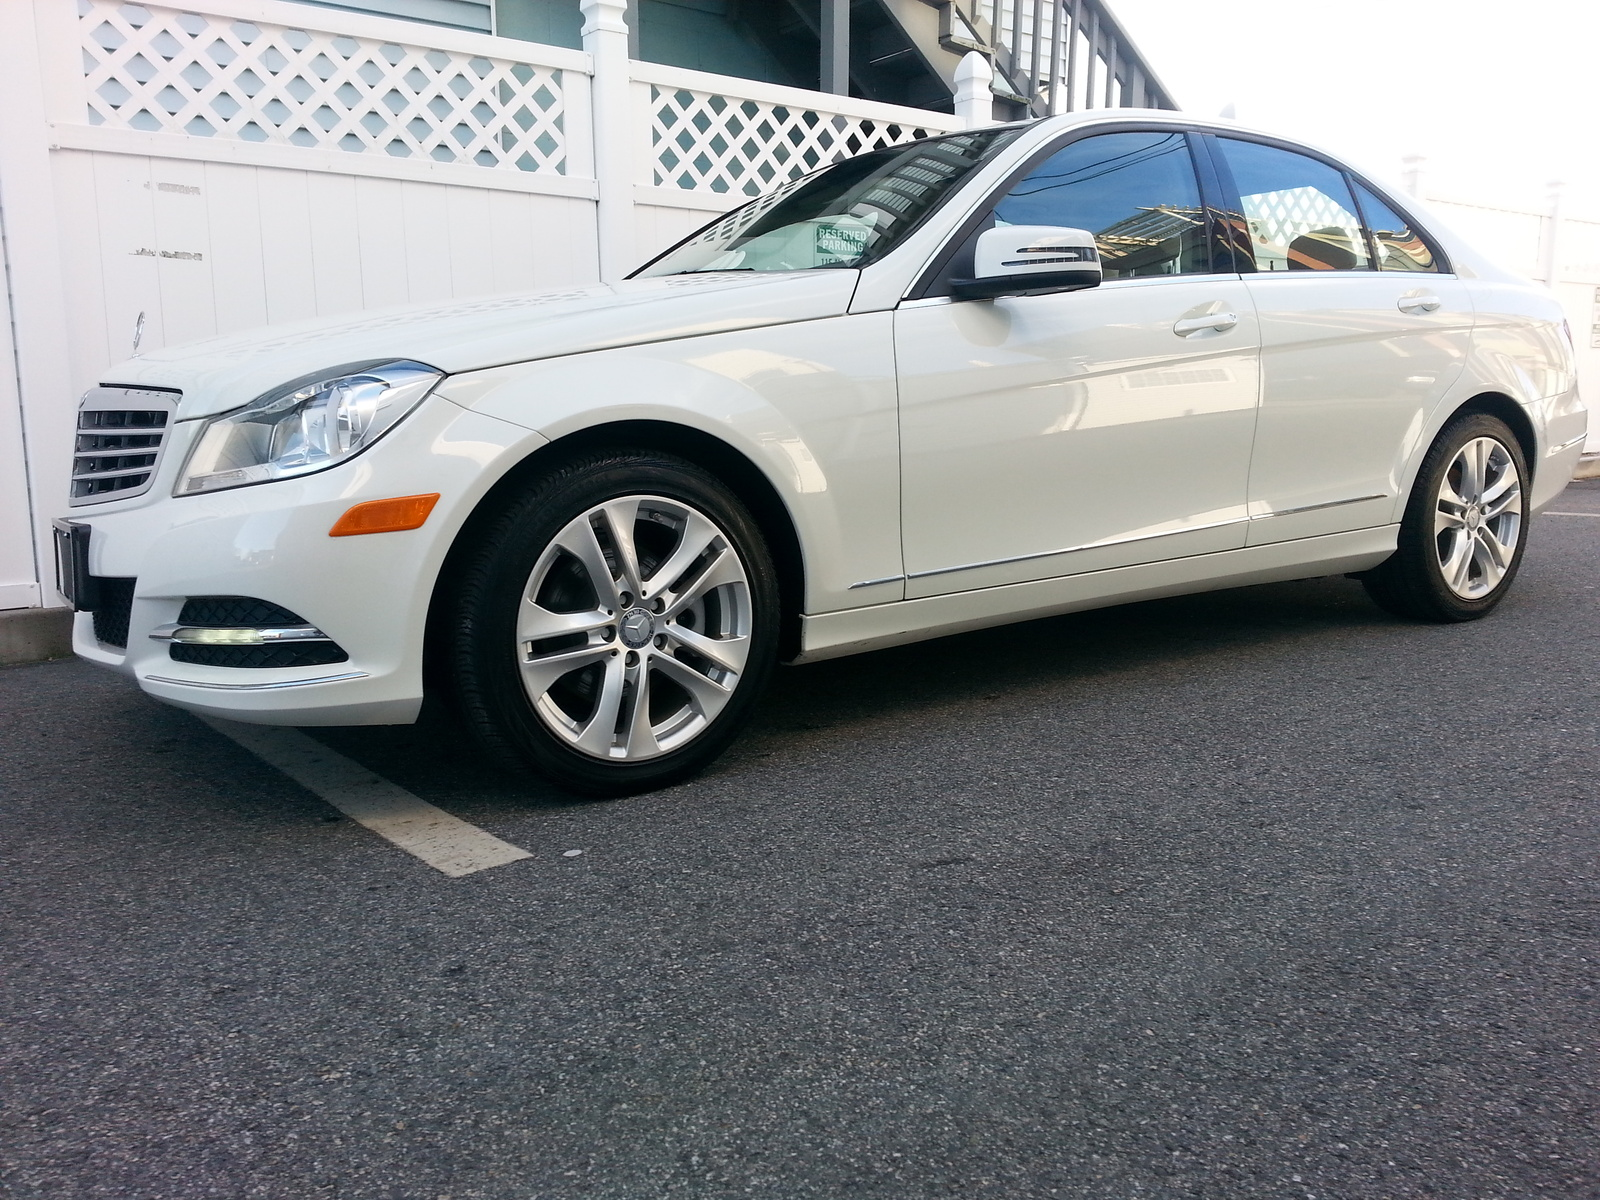 Picture of 2012 mercedes benz c class c300 luxury 4matic for 2012 mercedes benz c300